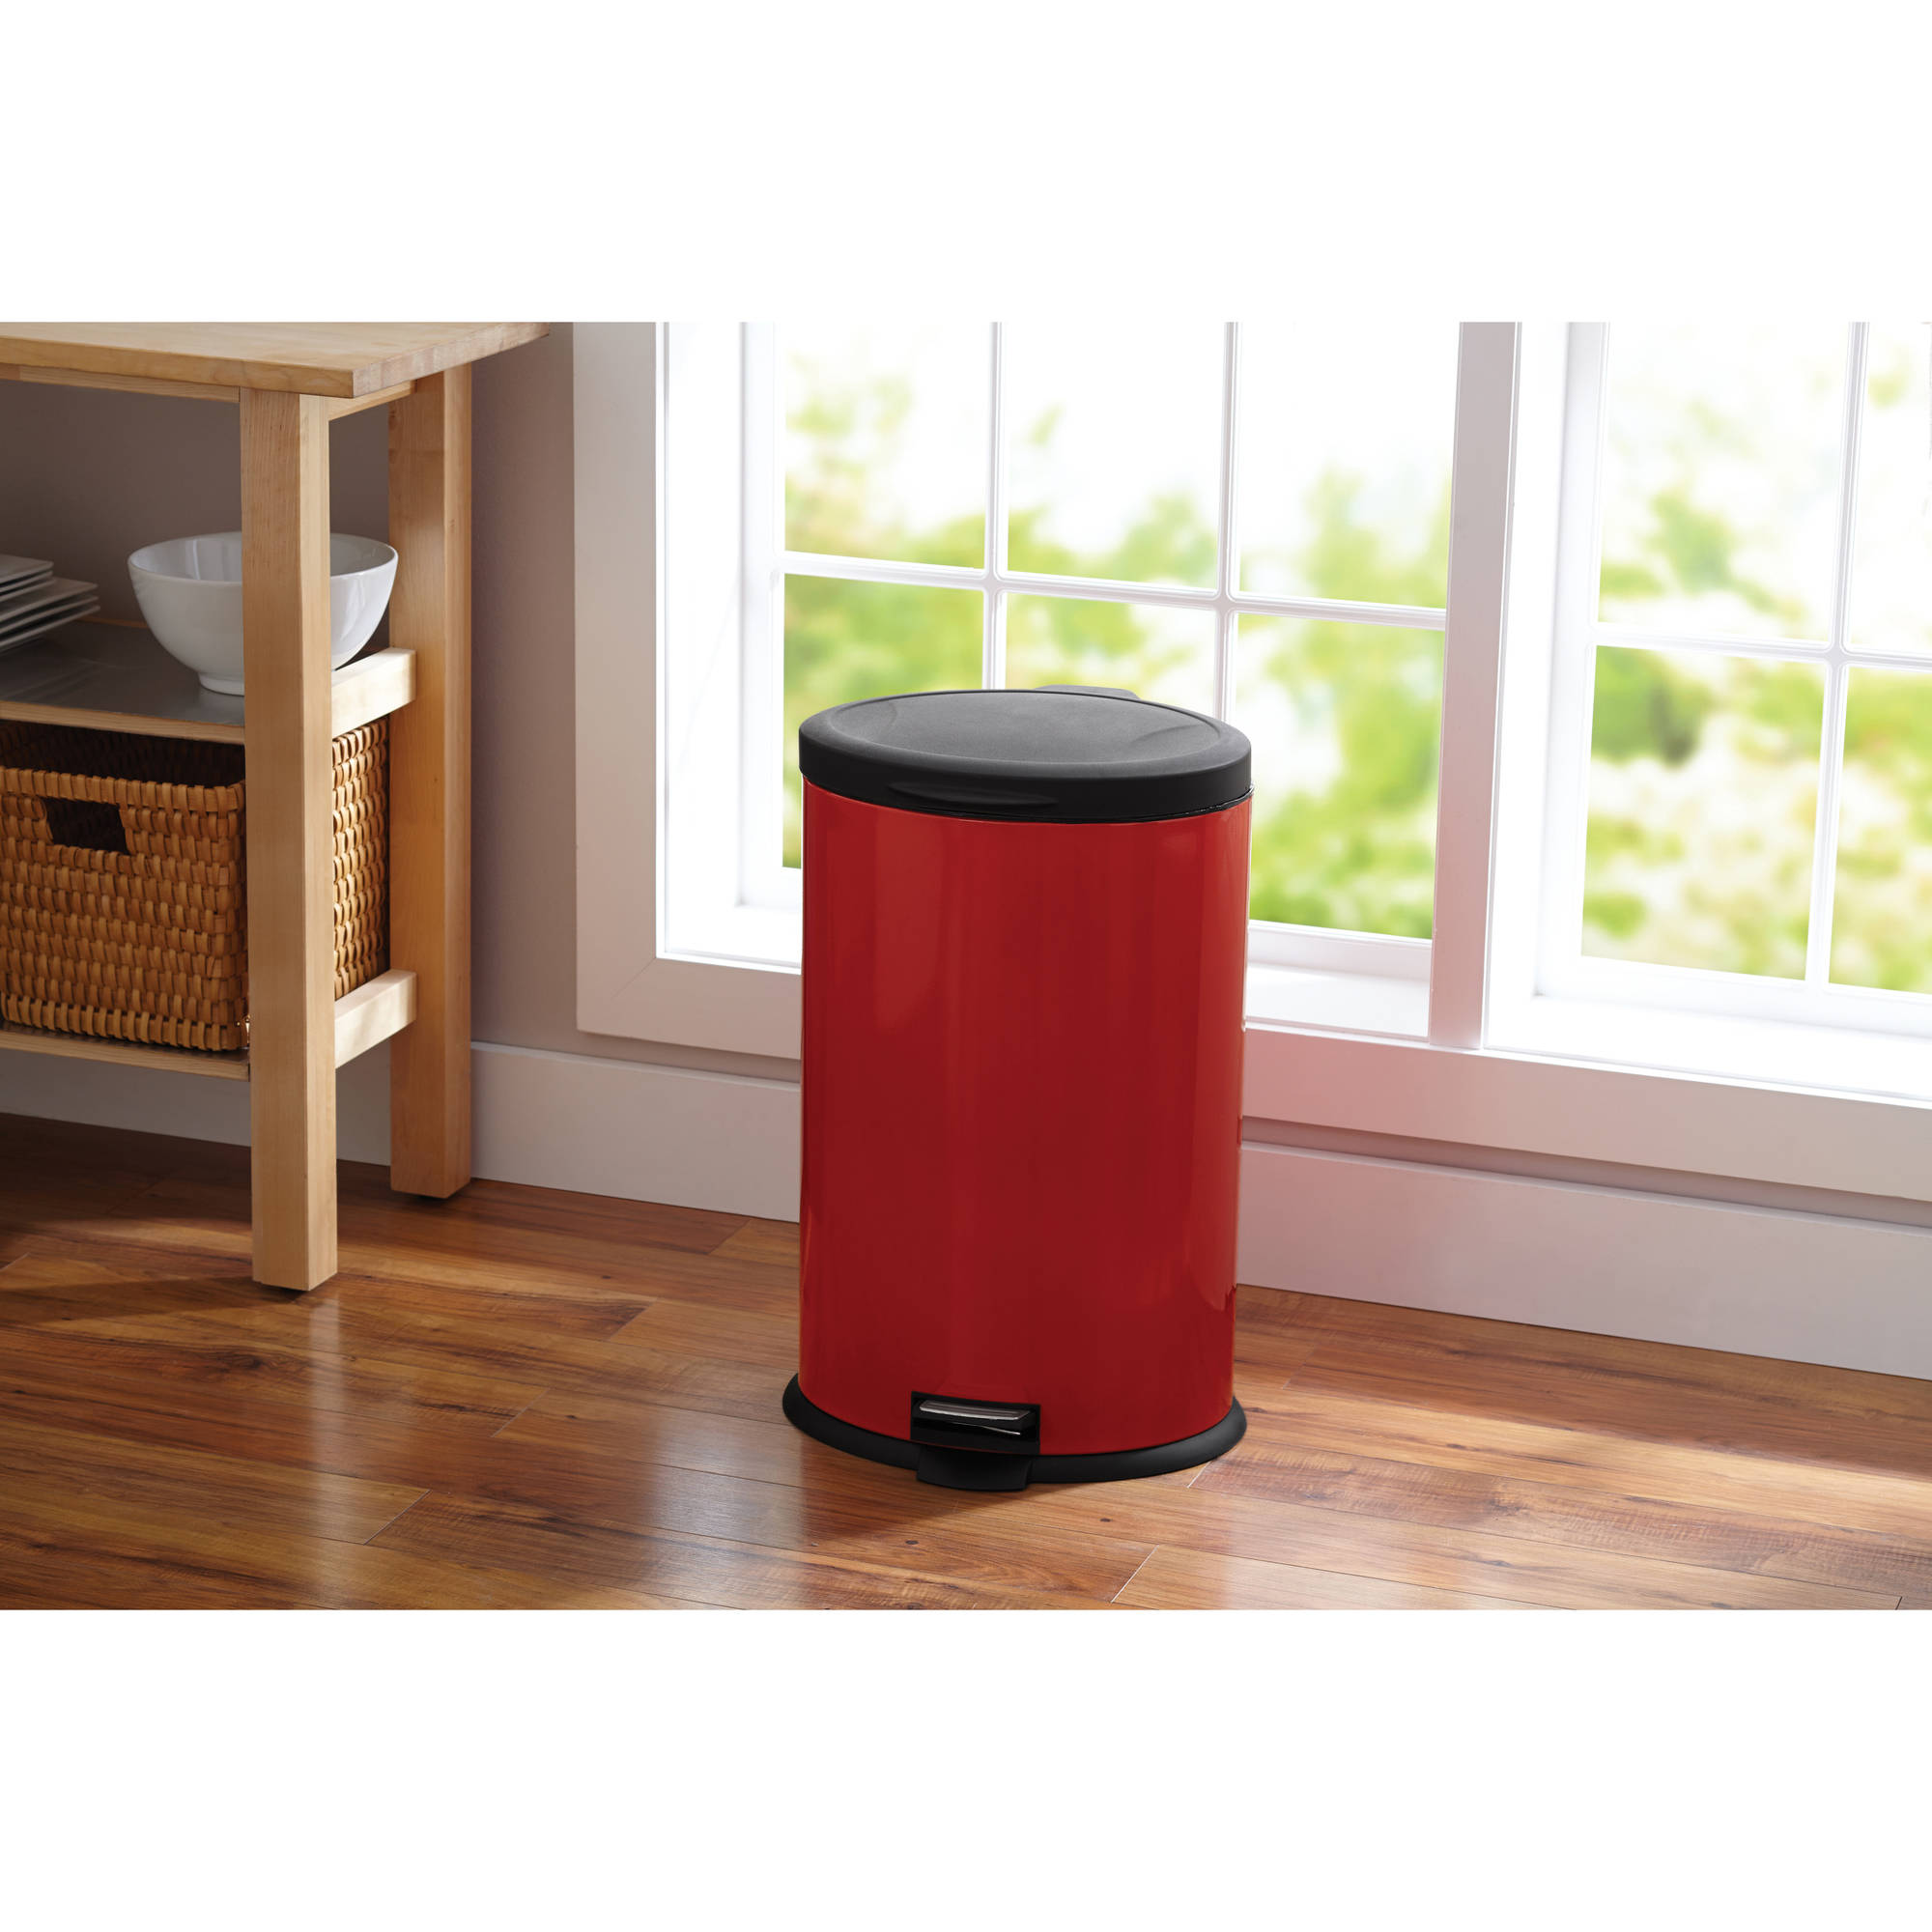 better homes and gardens trash cans & recycle bins - walmart